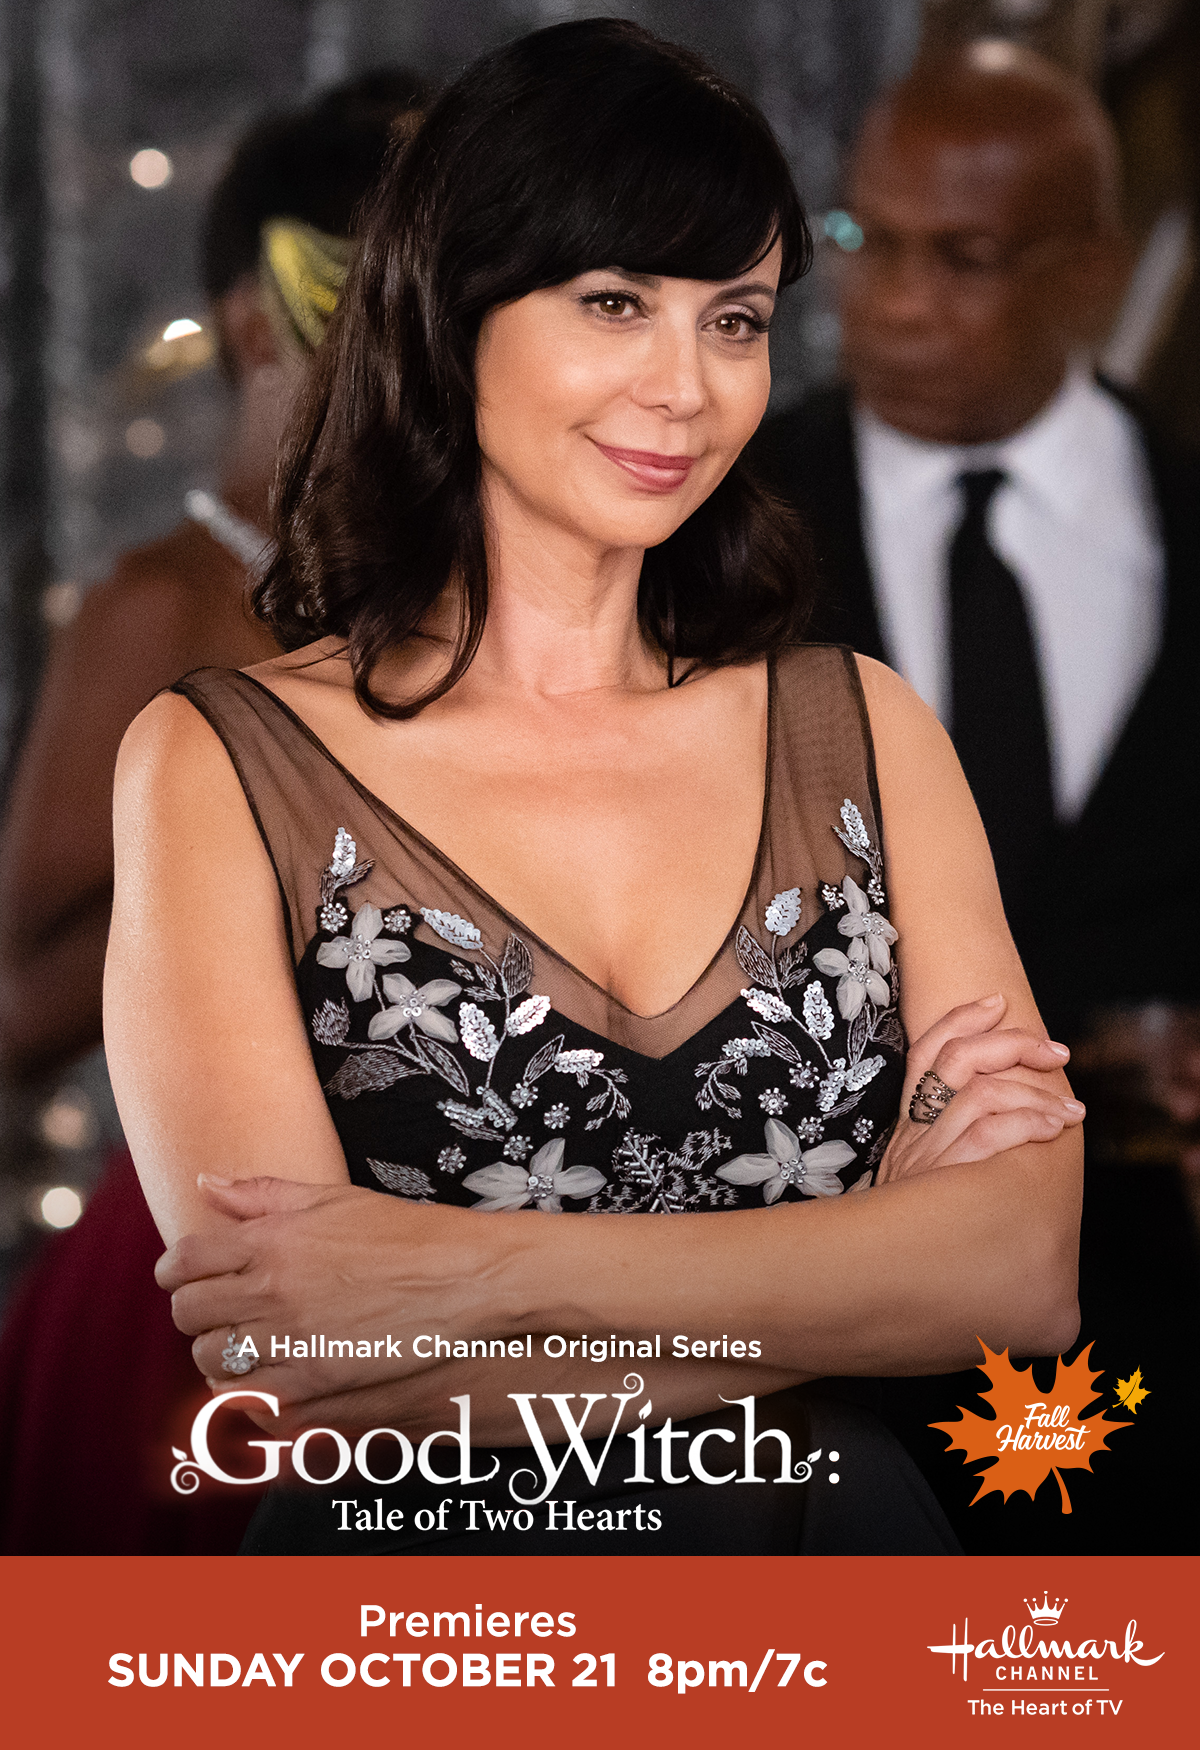 Who Desigbed Catherine Bells Dress On The Good Witch For The Halloween Gala 2020 Cassie (Catherine Bell) is stunning in her gala gown for